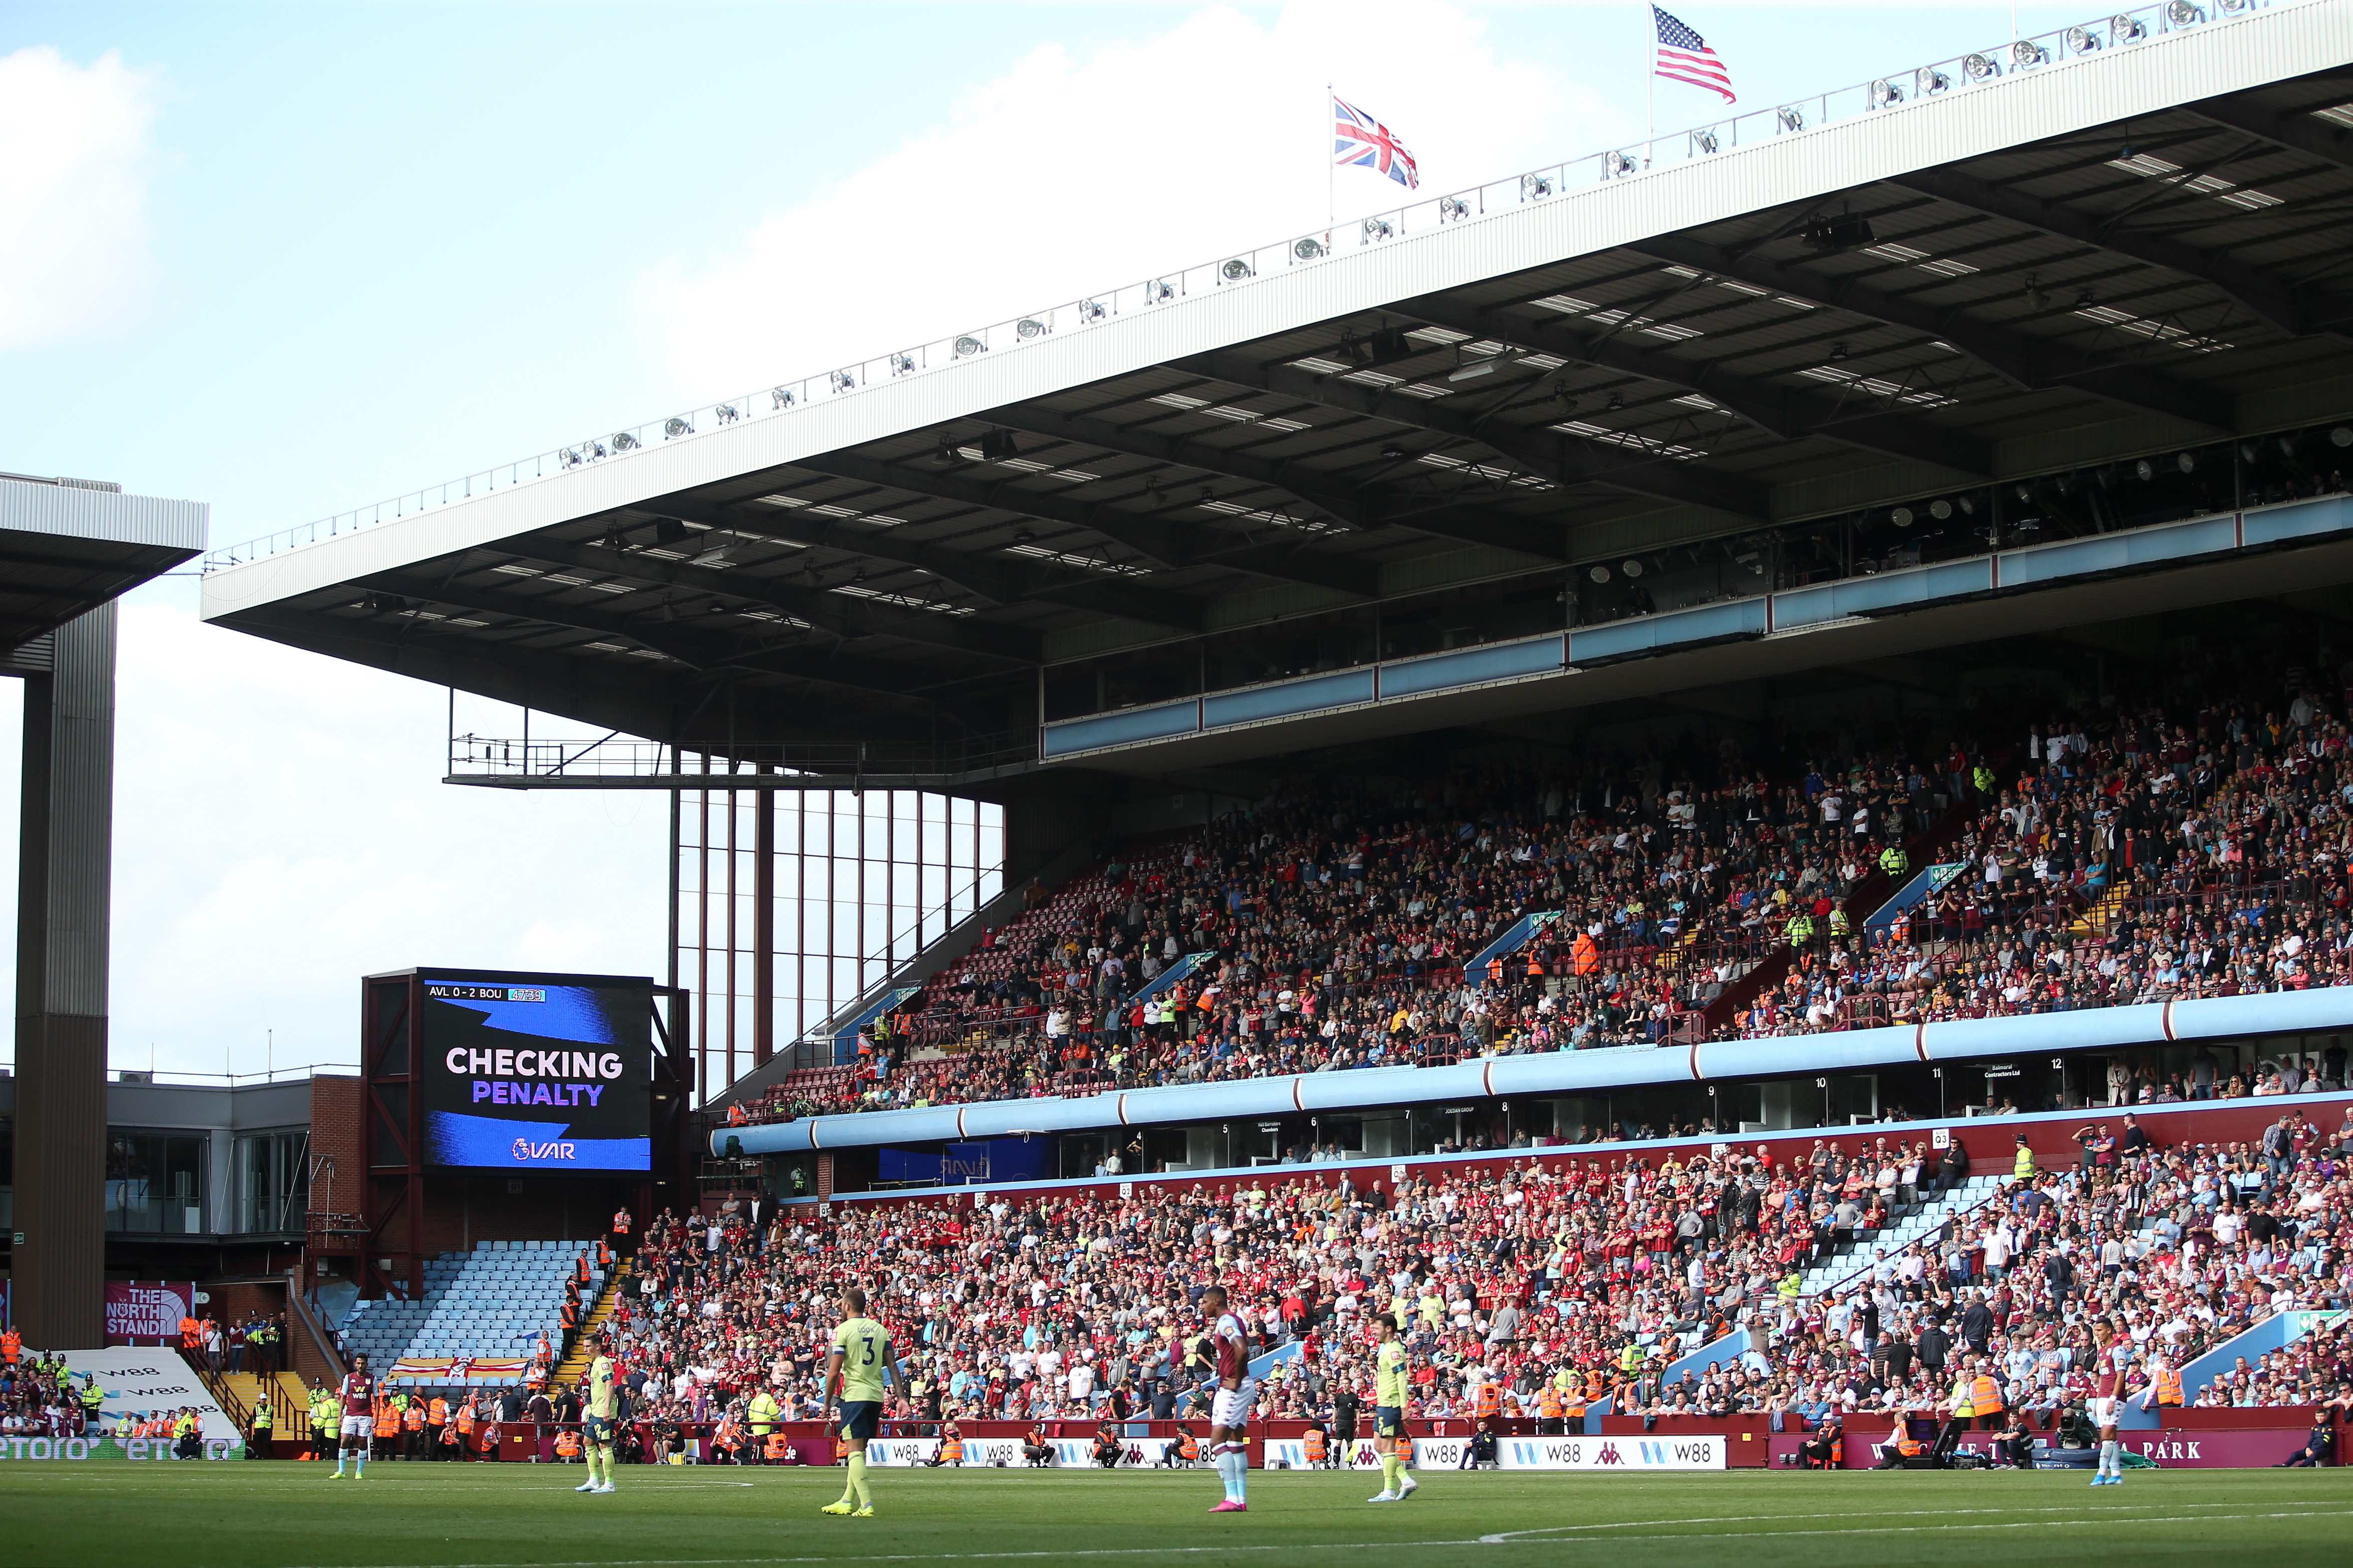 Keep the faith and be realistic - Villa need your total support